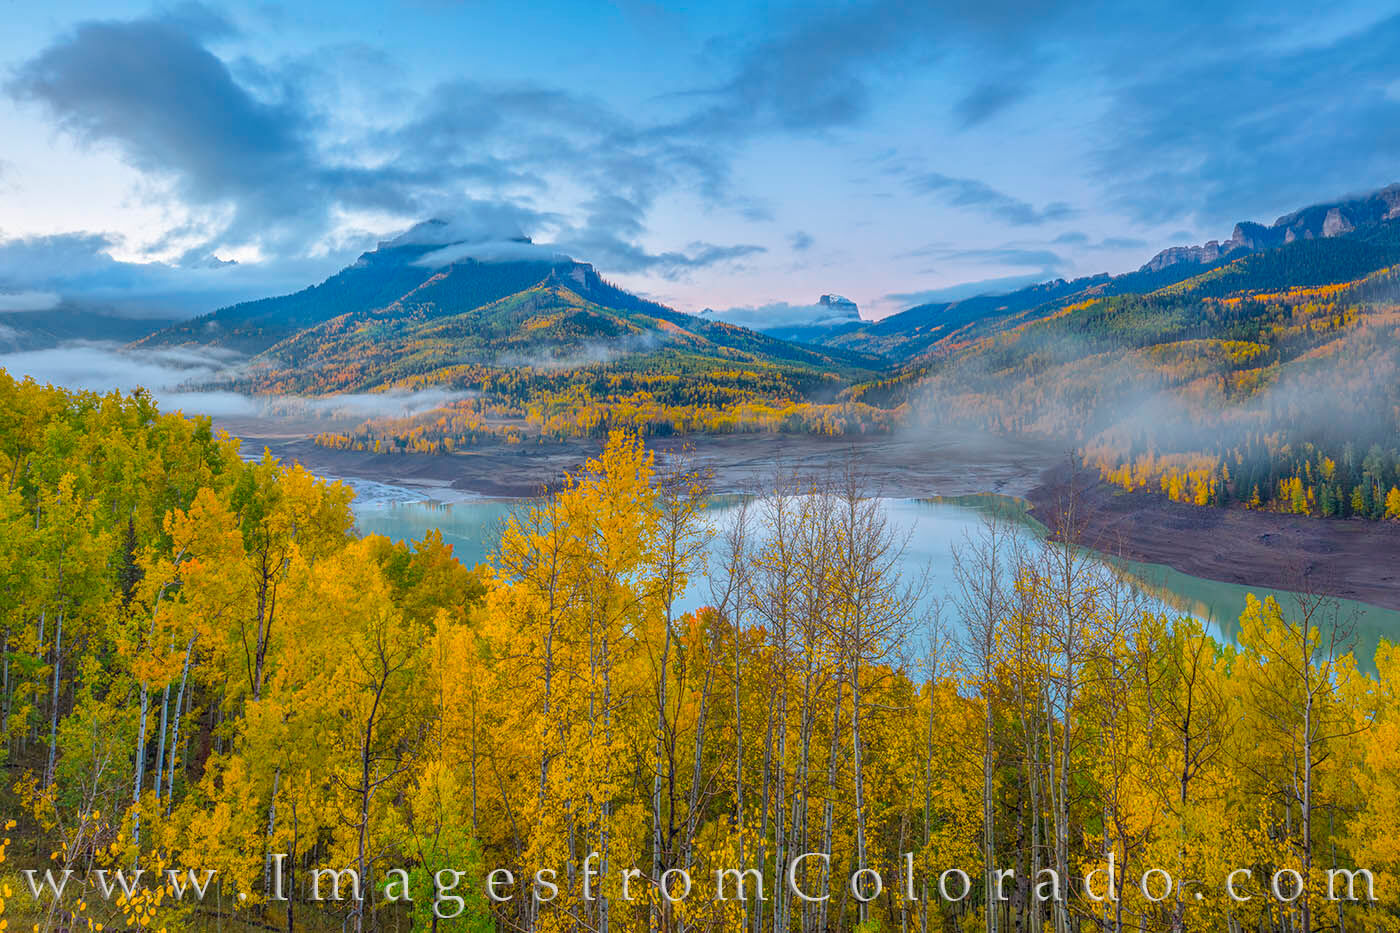 Golden aspen highlight this fall image taken from a ridge above Silver Jack Reservoir. The dirt road makes it easy to access...